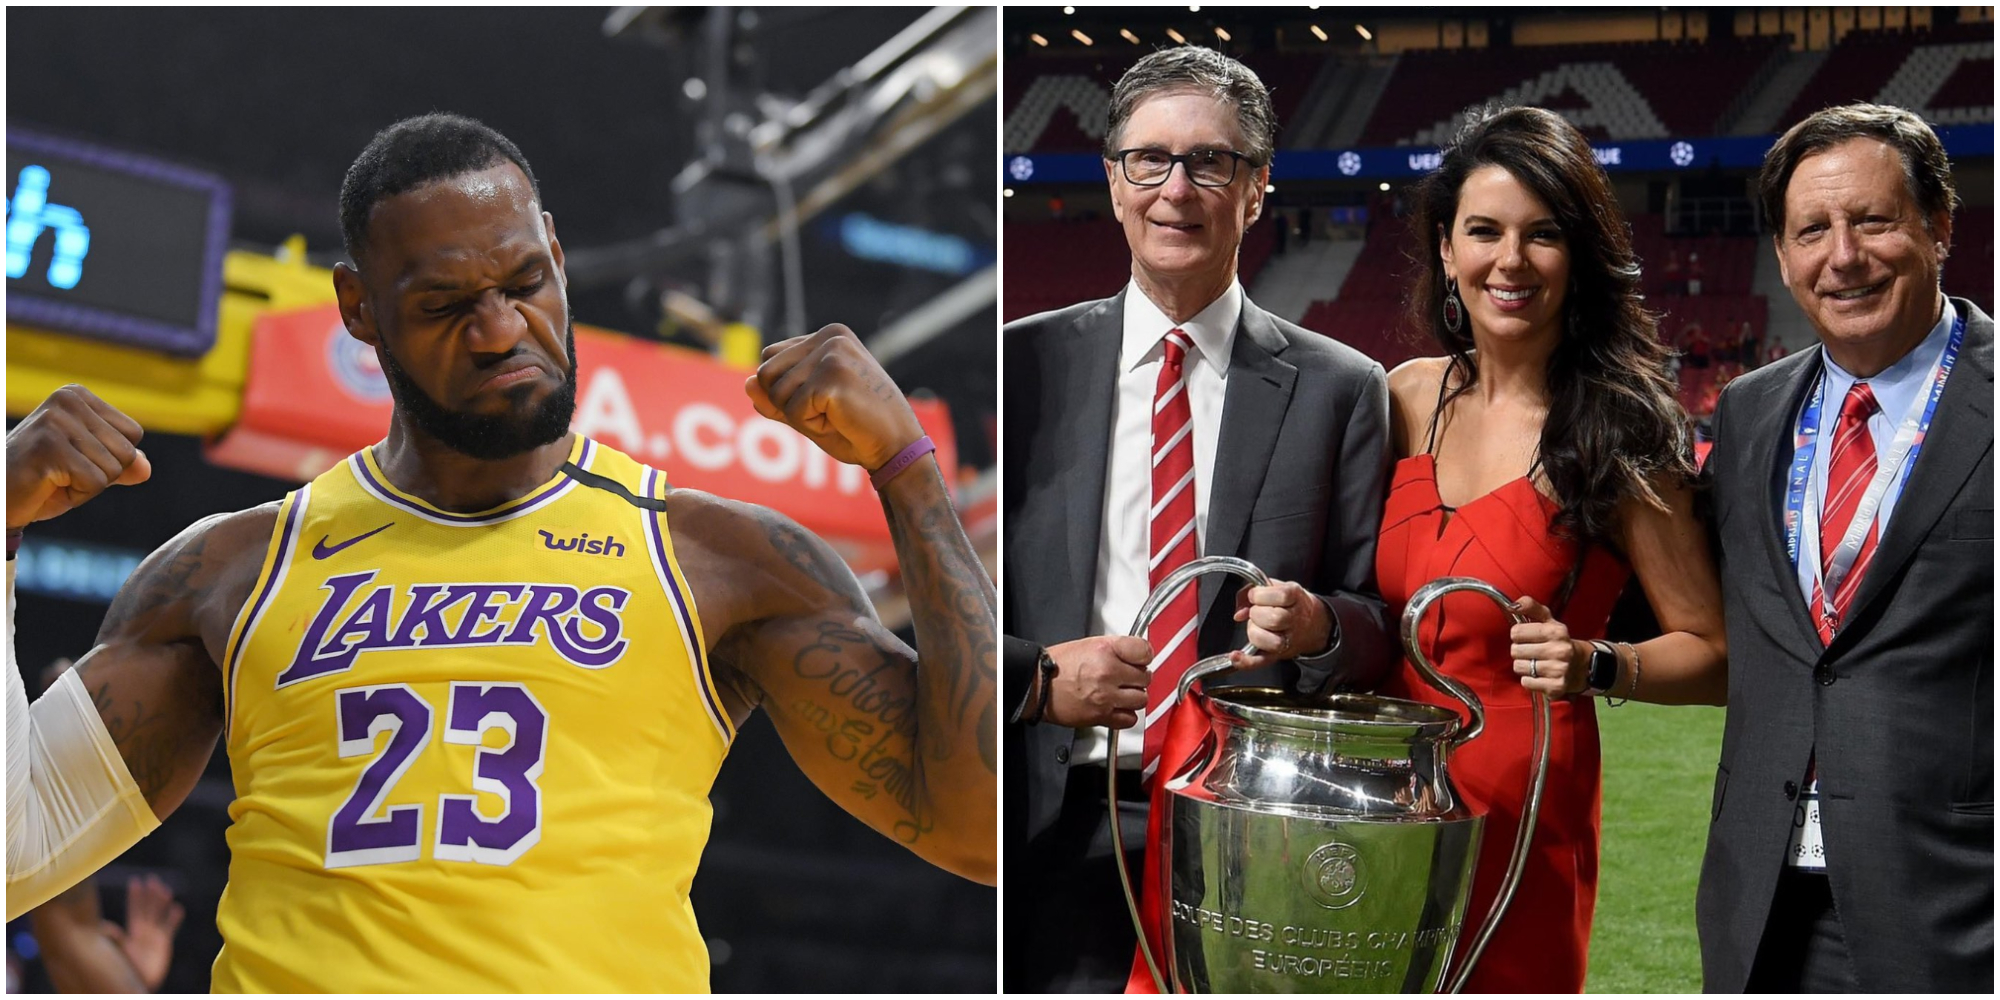 LeBron James to have input on LFC 'management decisions' with implications for recruitment – The Athletic